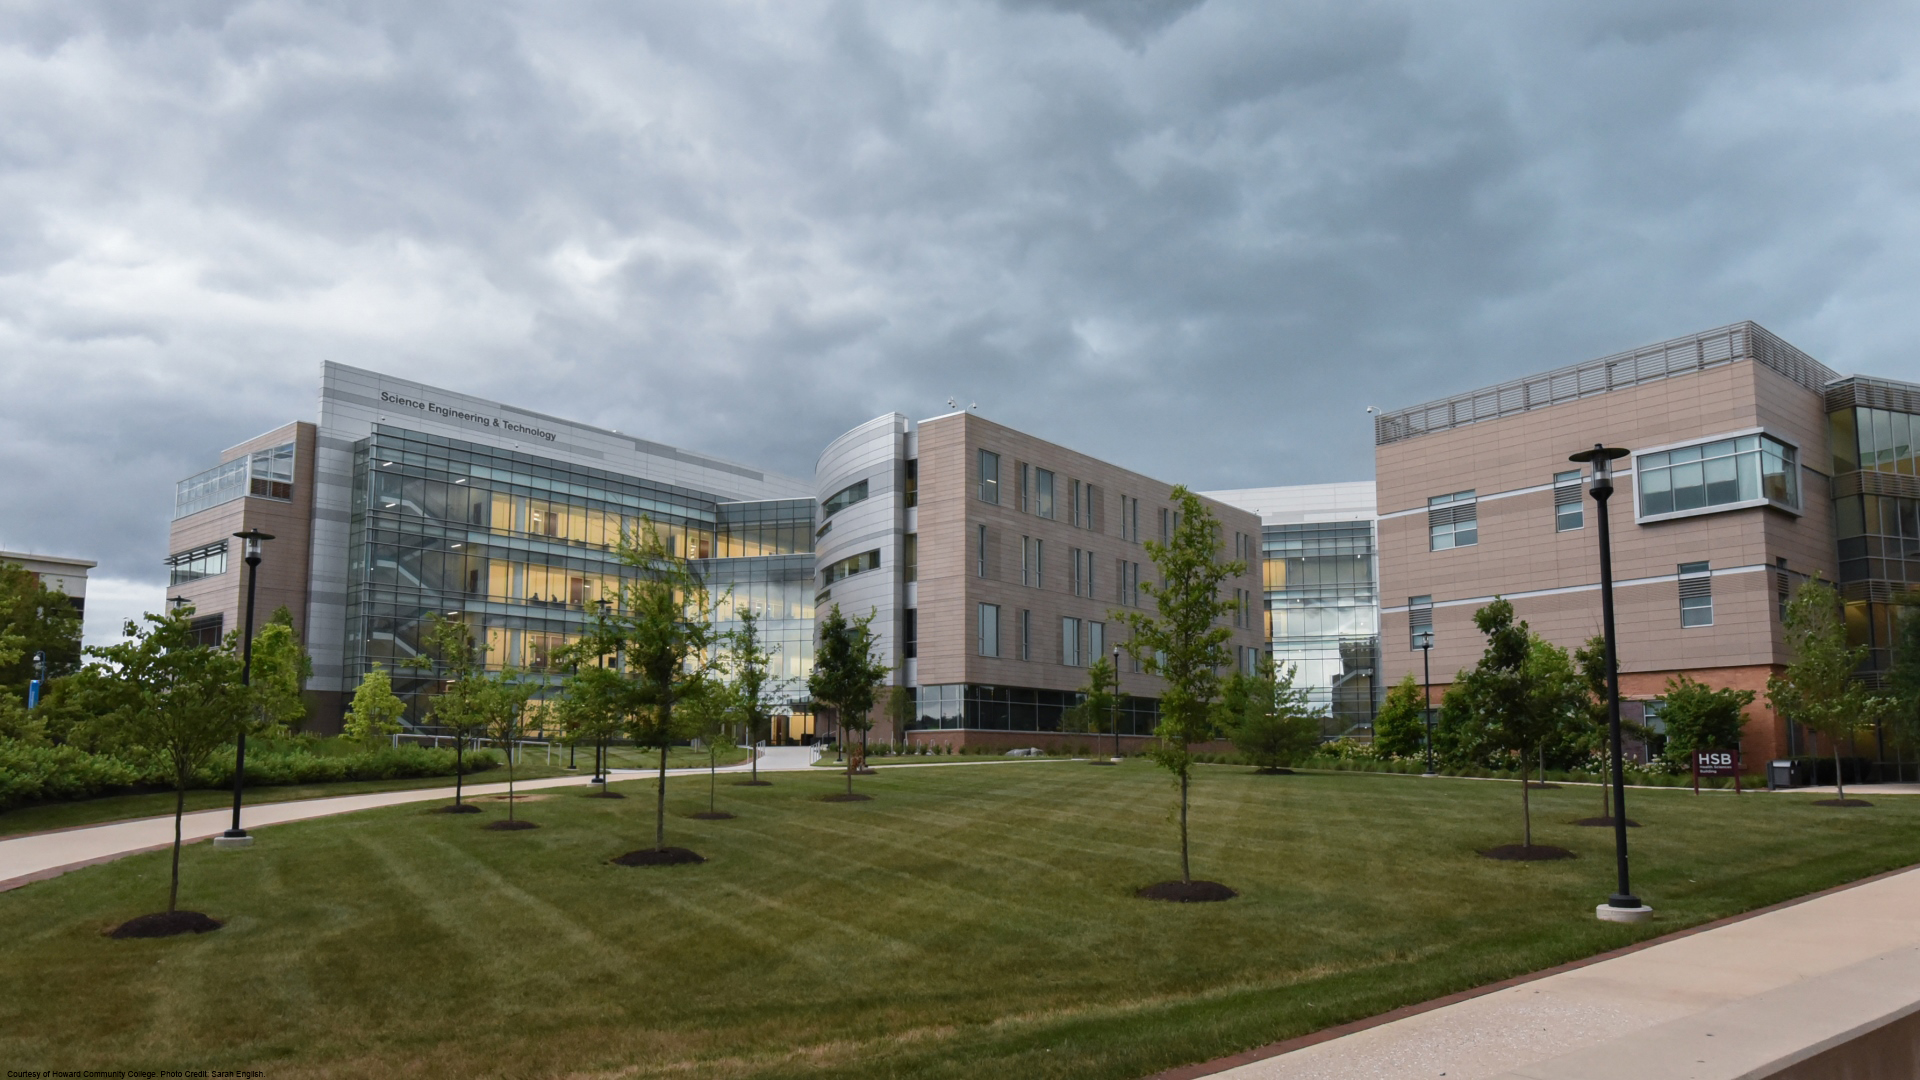 Howard Community College Science Engineering And